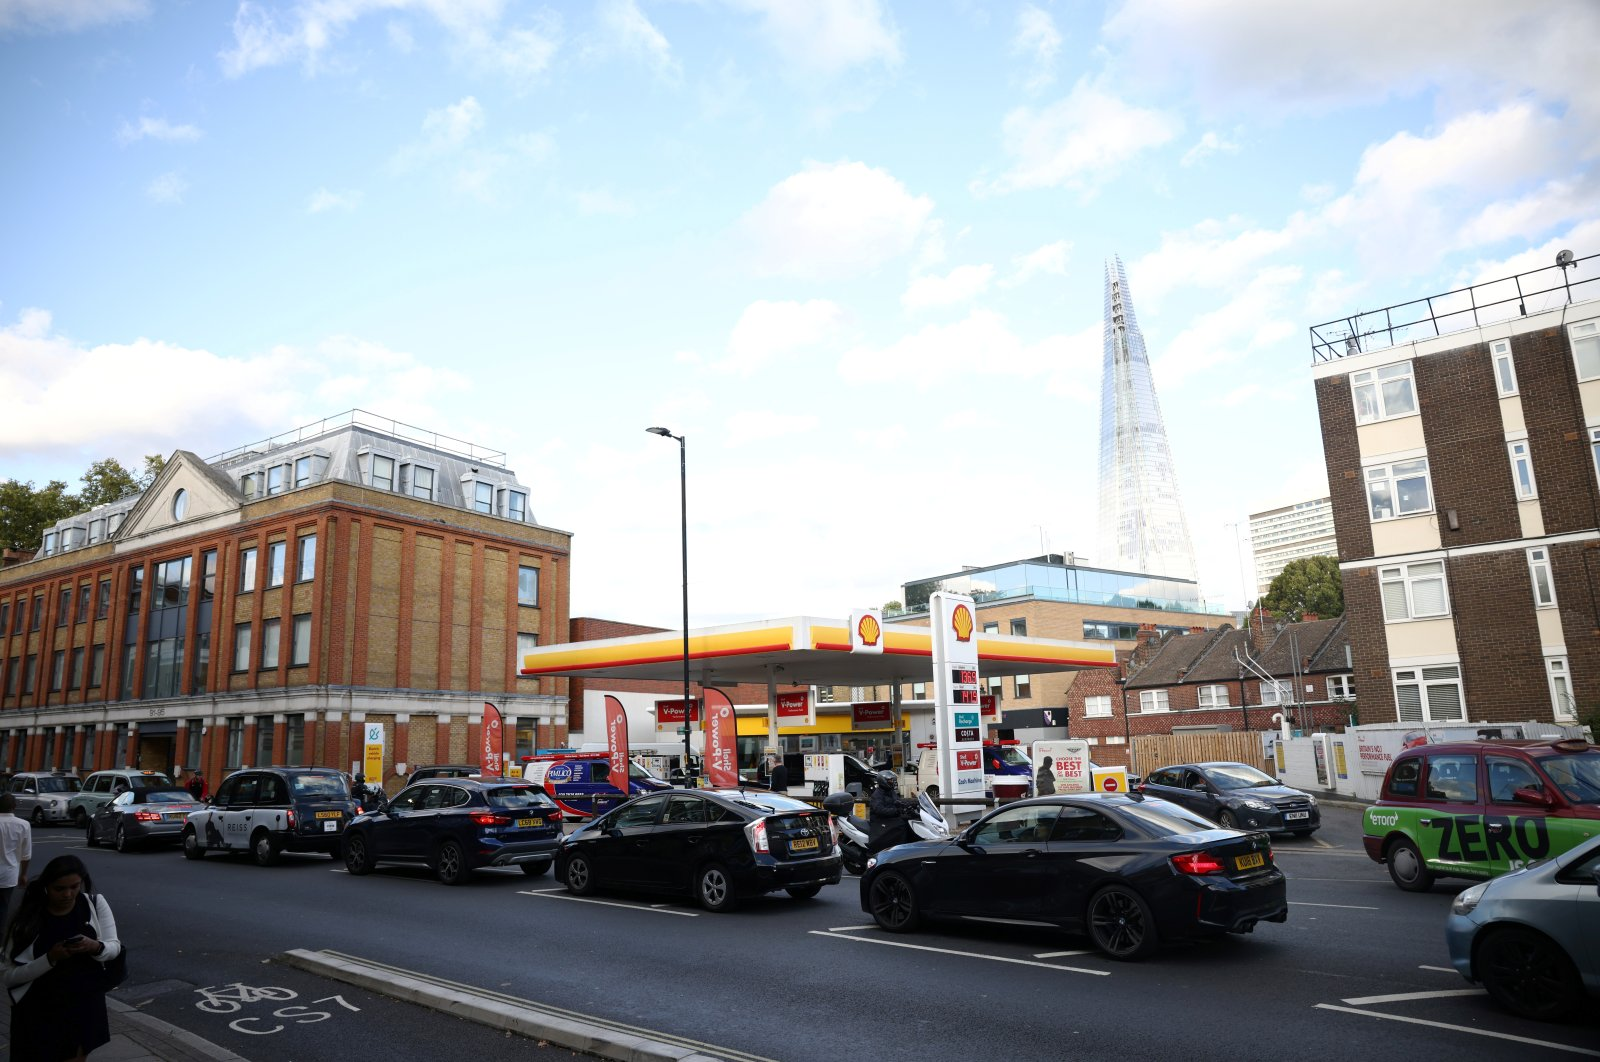 Vehicles line up to refill at a Shell gas station in central London, Britain, Sept. 27, 2021. (Reuters Photo)